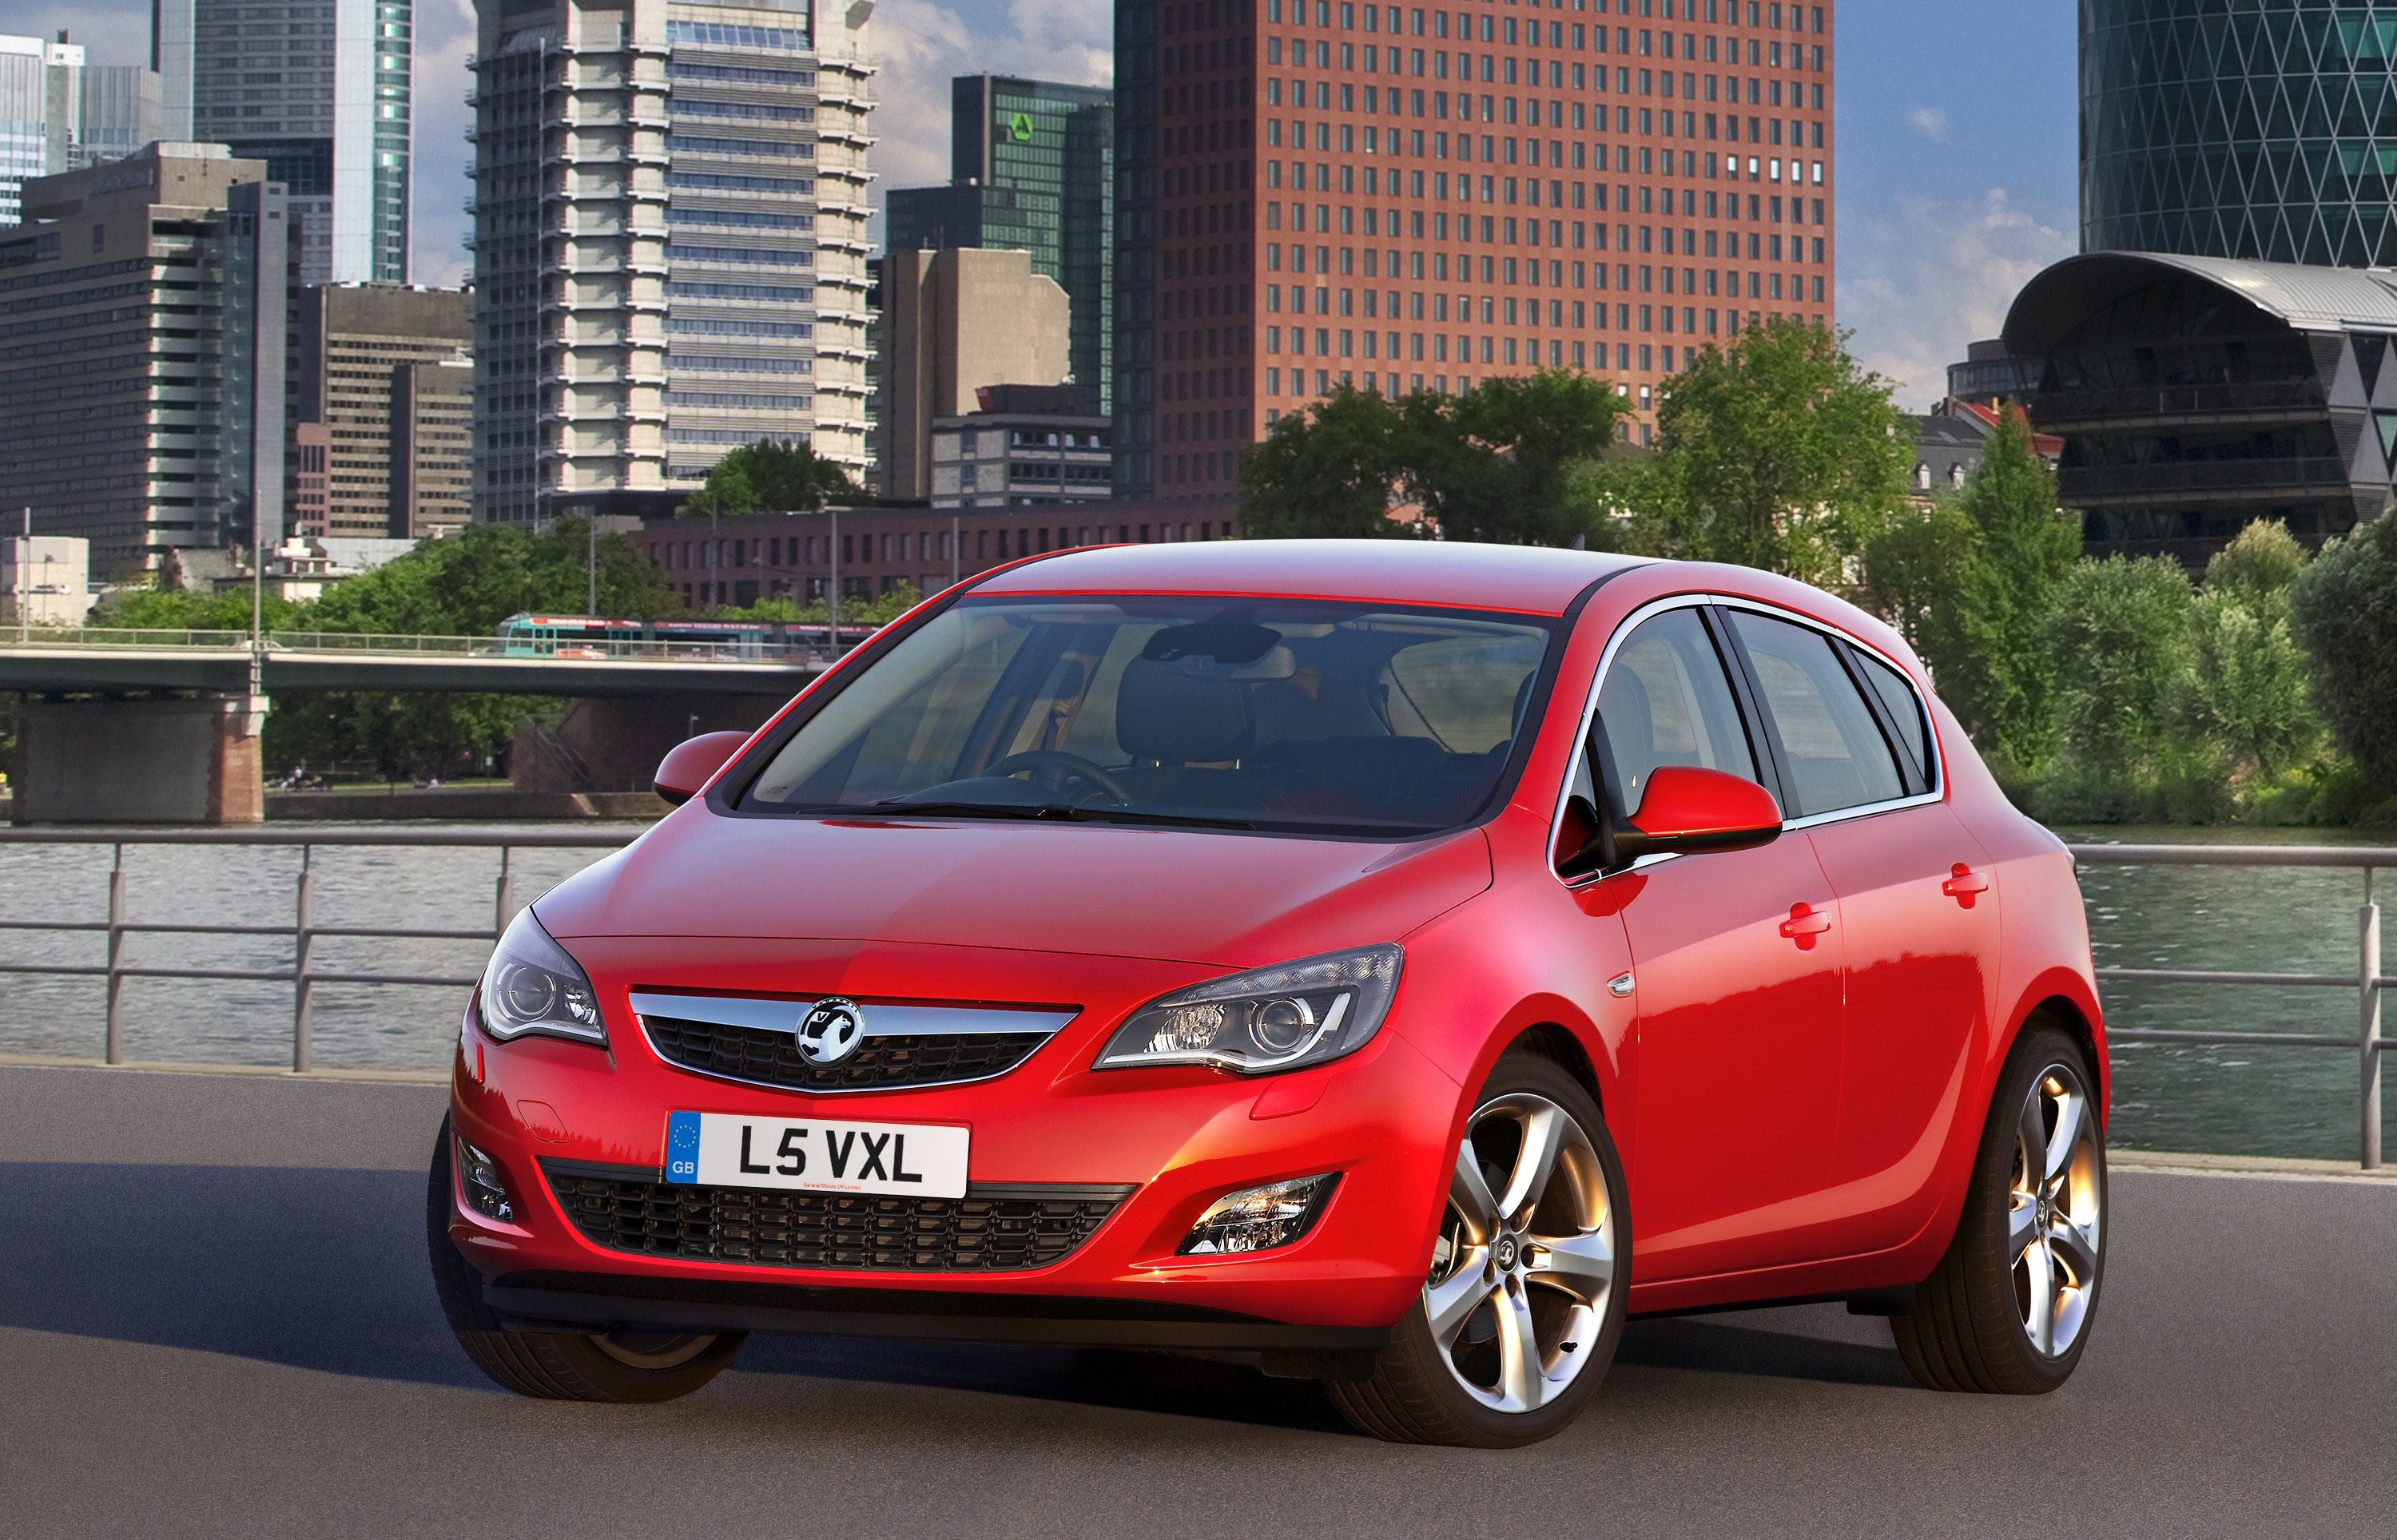 vauxhall astra with whole new range of greener engines. Black Bedroom Furniture Sets. Home Design Ideas